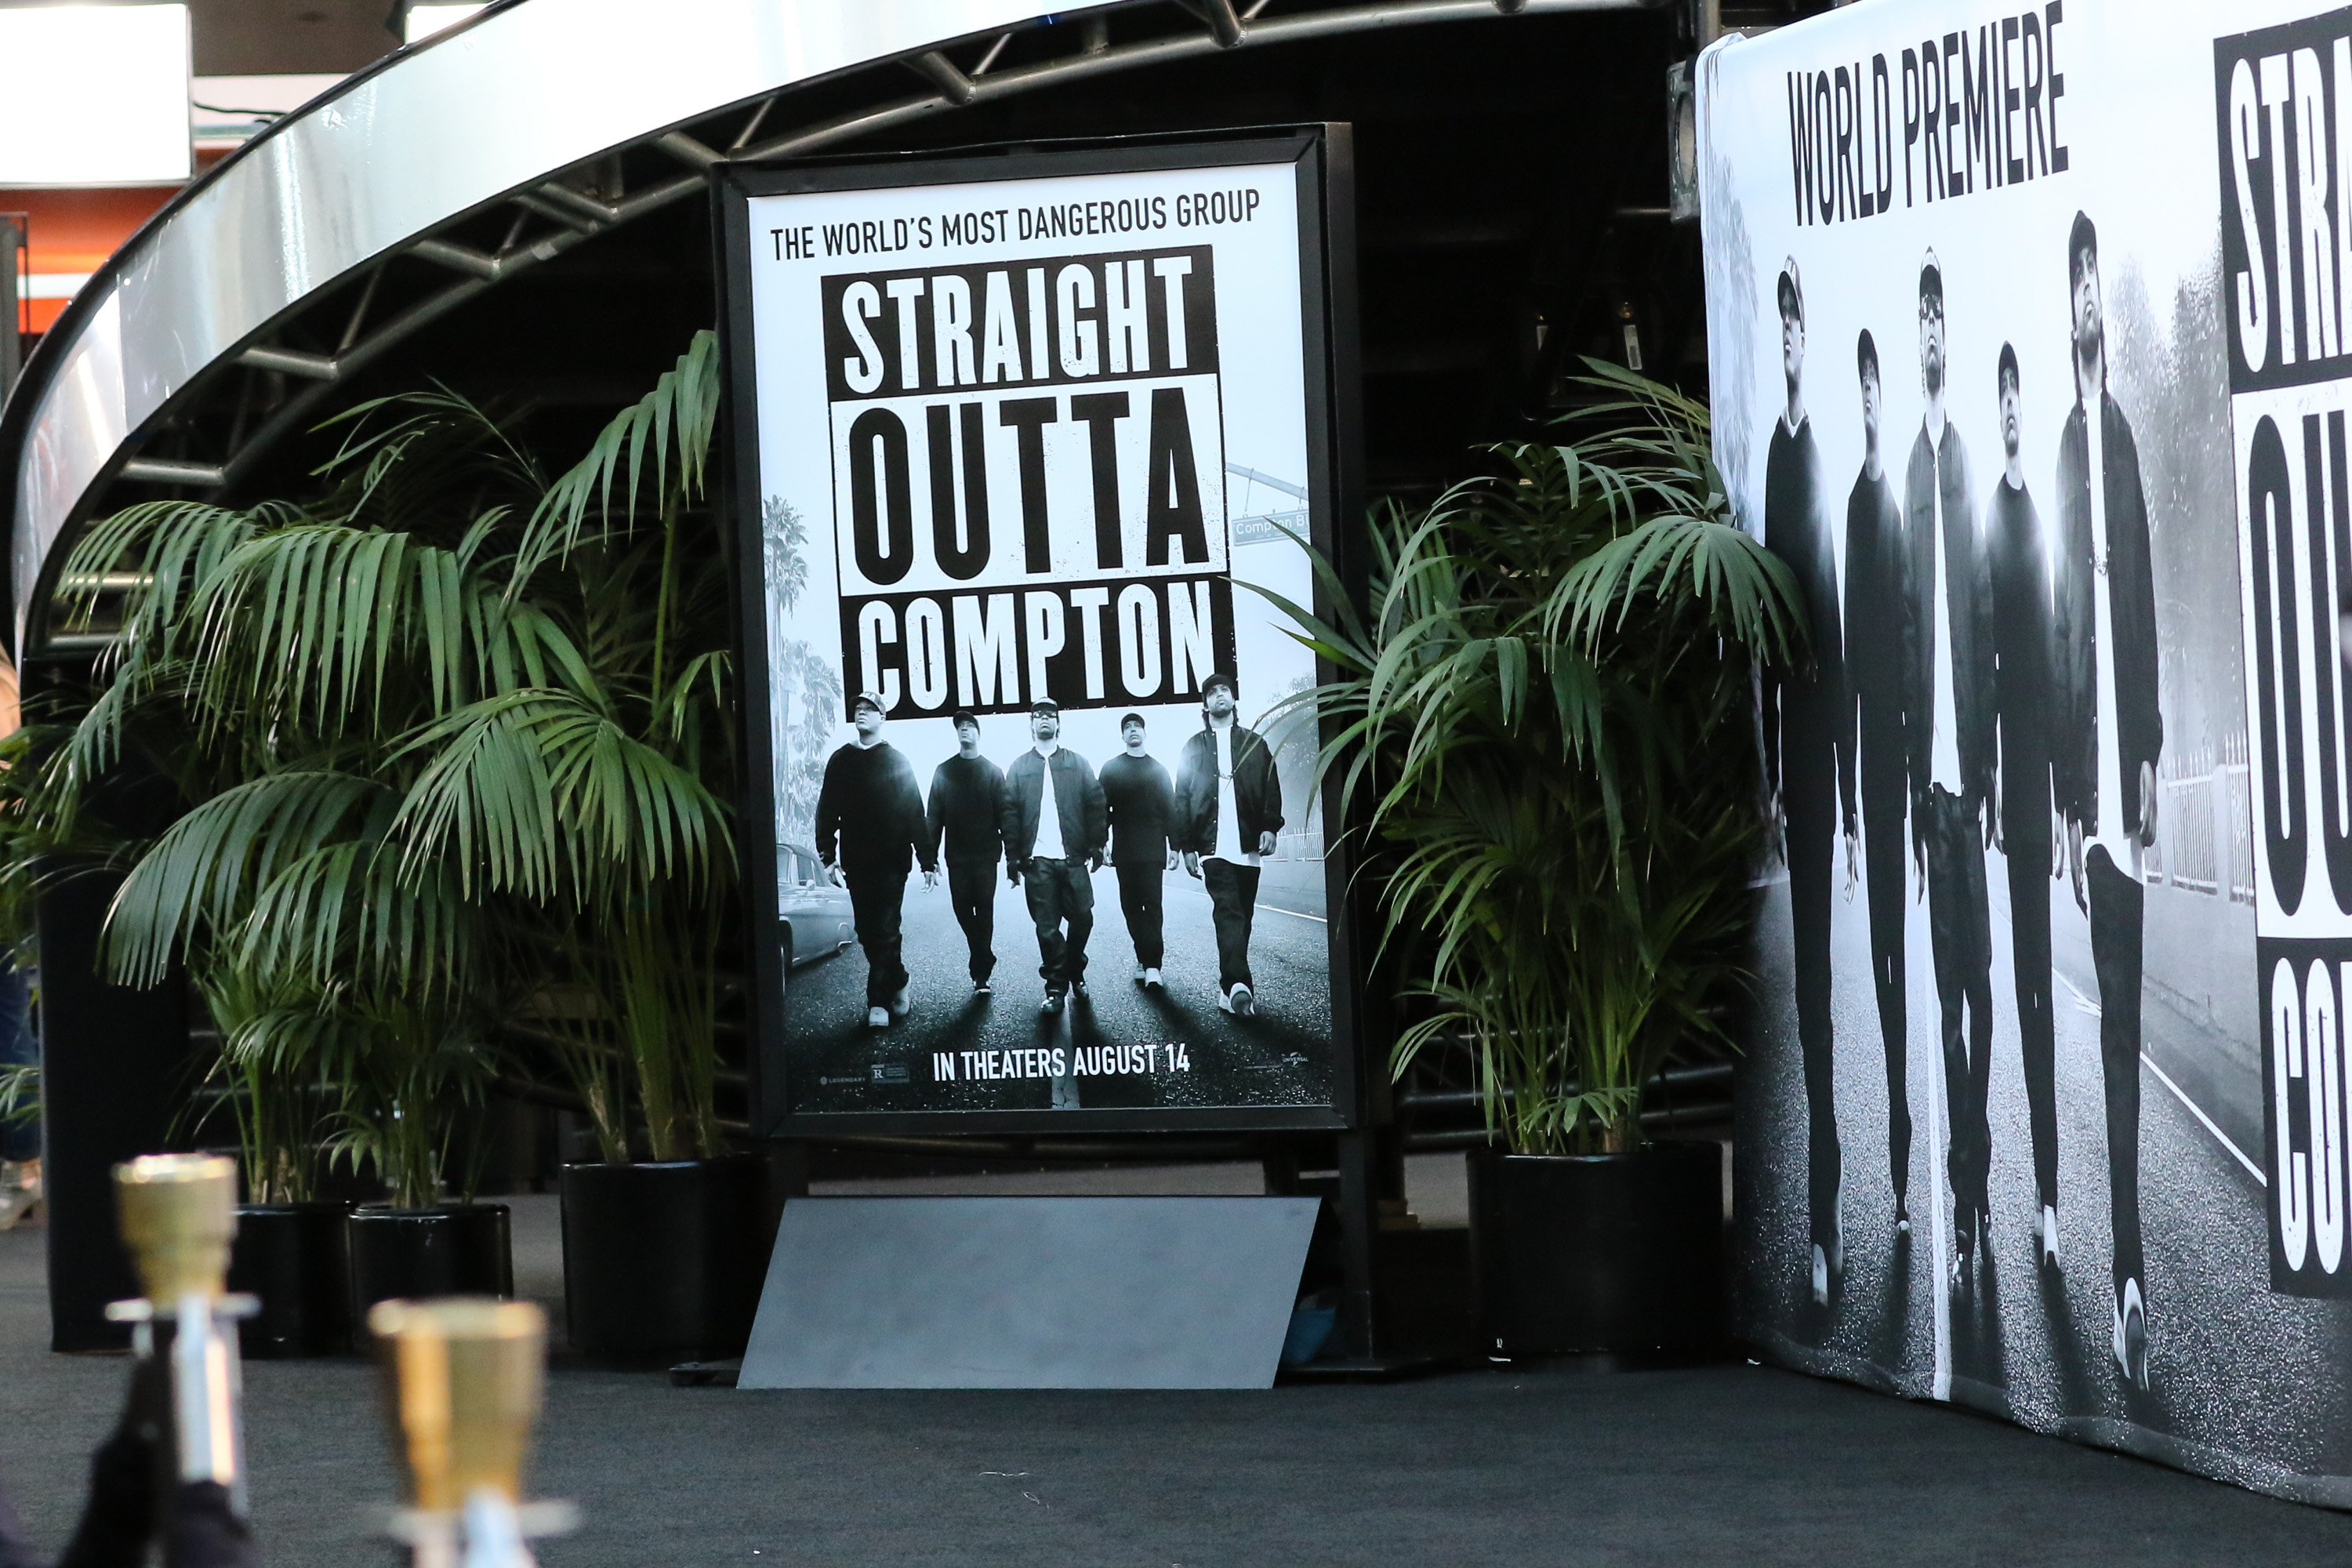 Straight outta compton tomica woods wright red carpet premiere - The World Premiere Of Straight Outta Compton